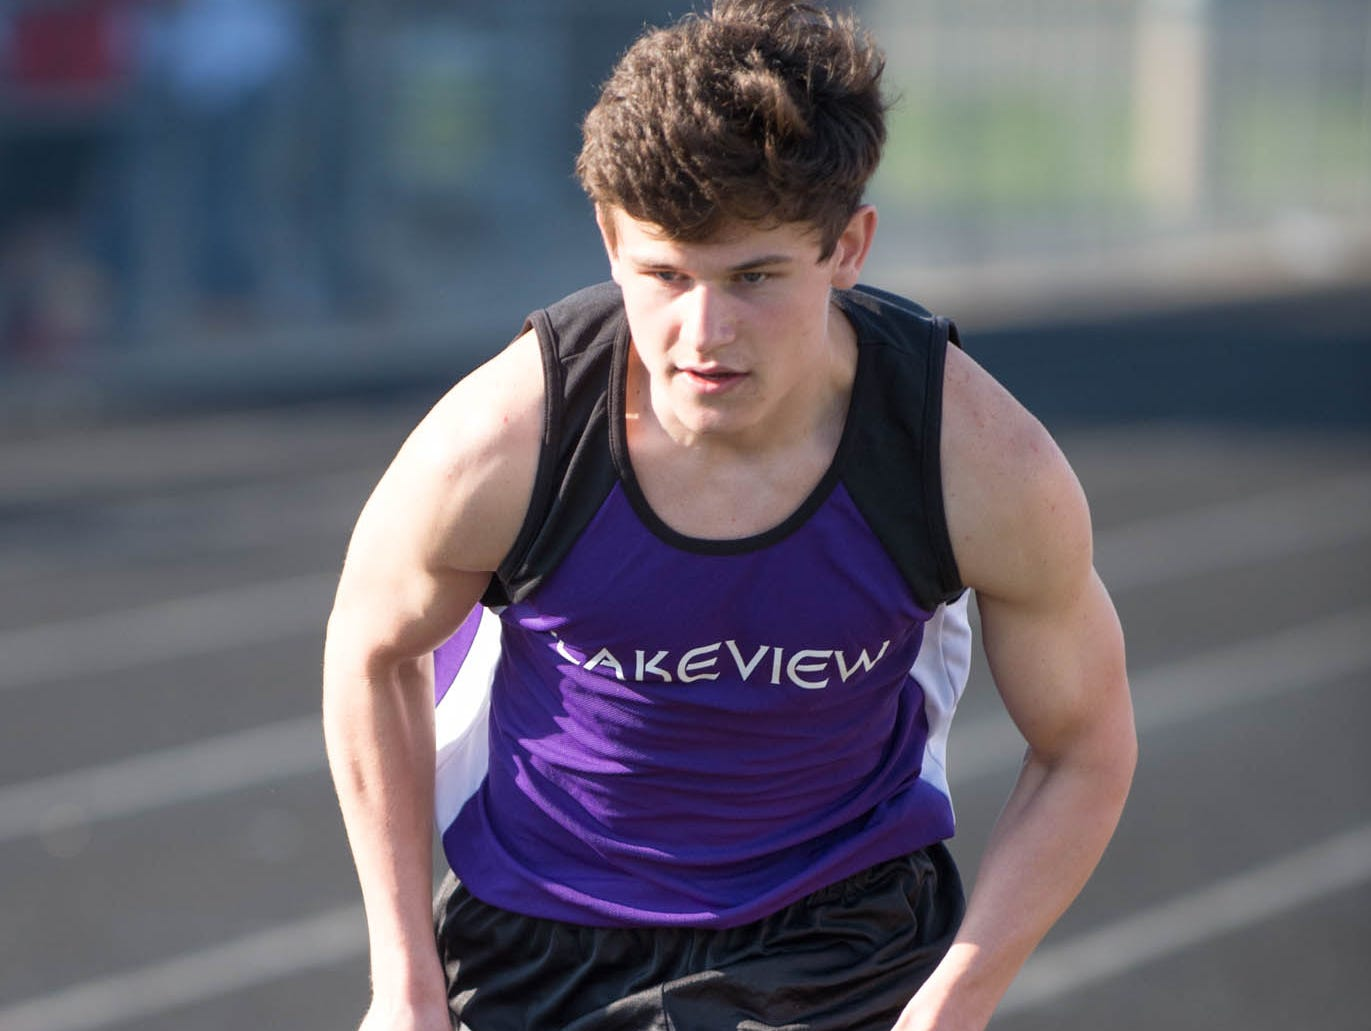 Lakeview's Brandon VanOosten competes in the 3,200 relay at the Lakeview Track and Field Meet on Friday.